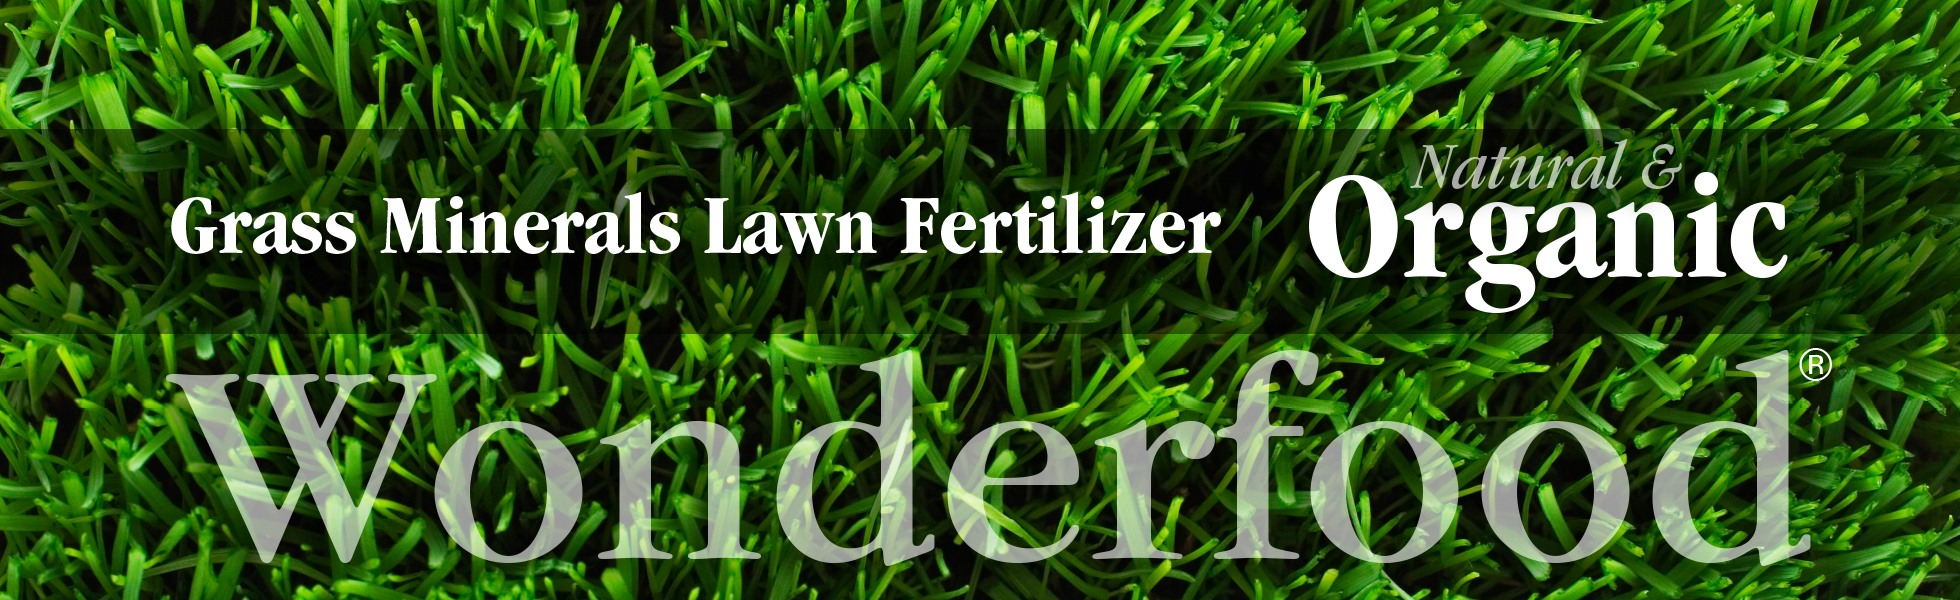 Lawn fertilizer. Organic lawn fertilizer. Grass fertilizer for healthy lawns